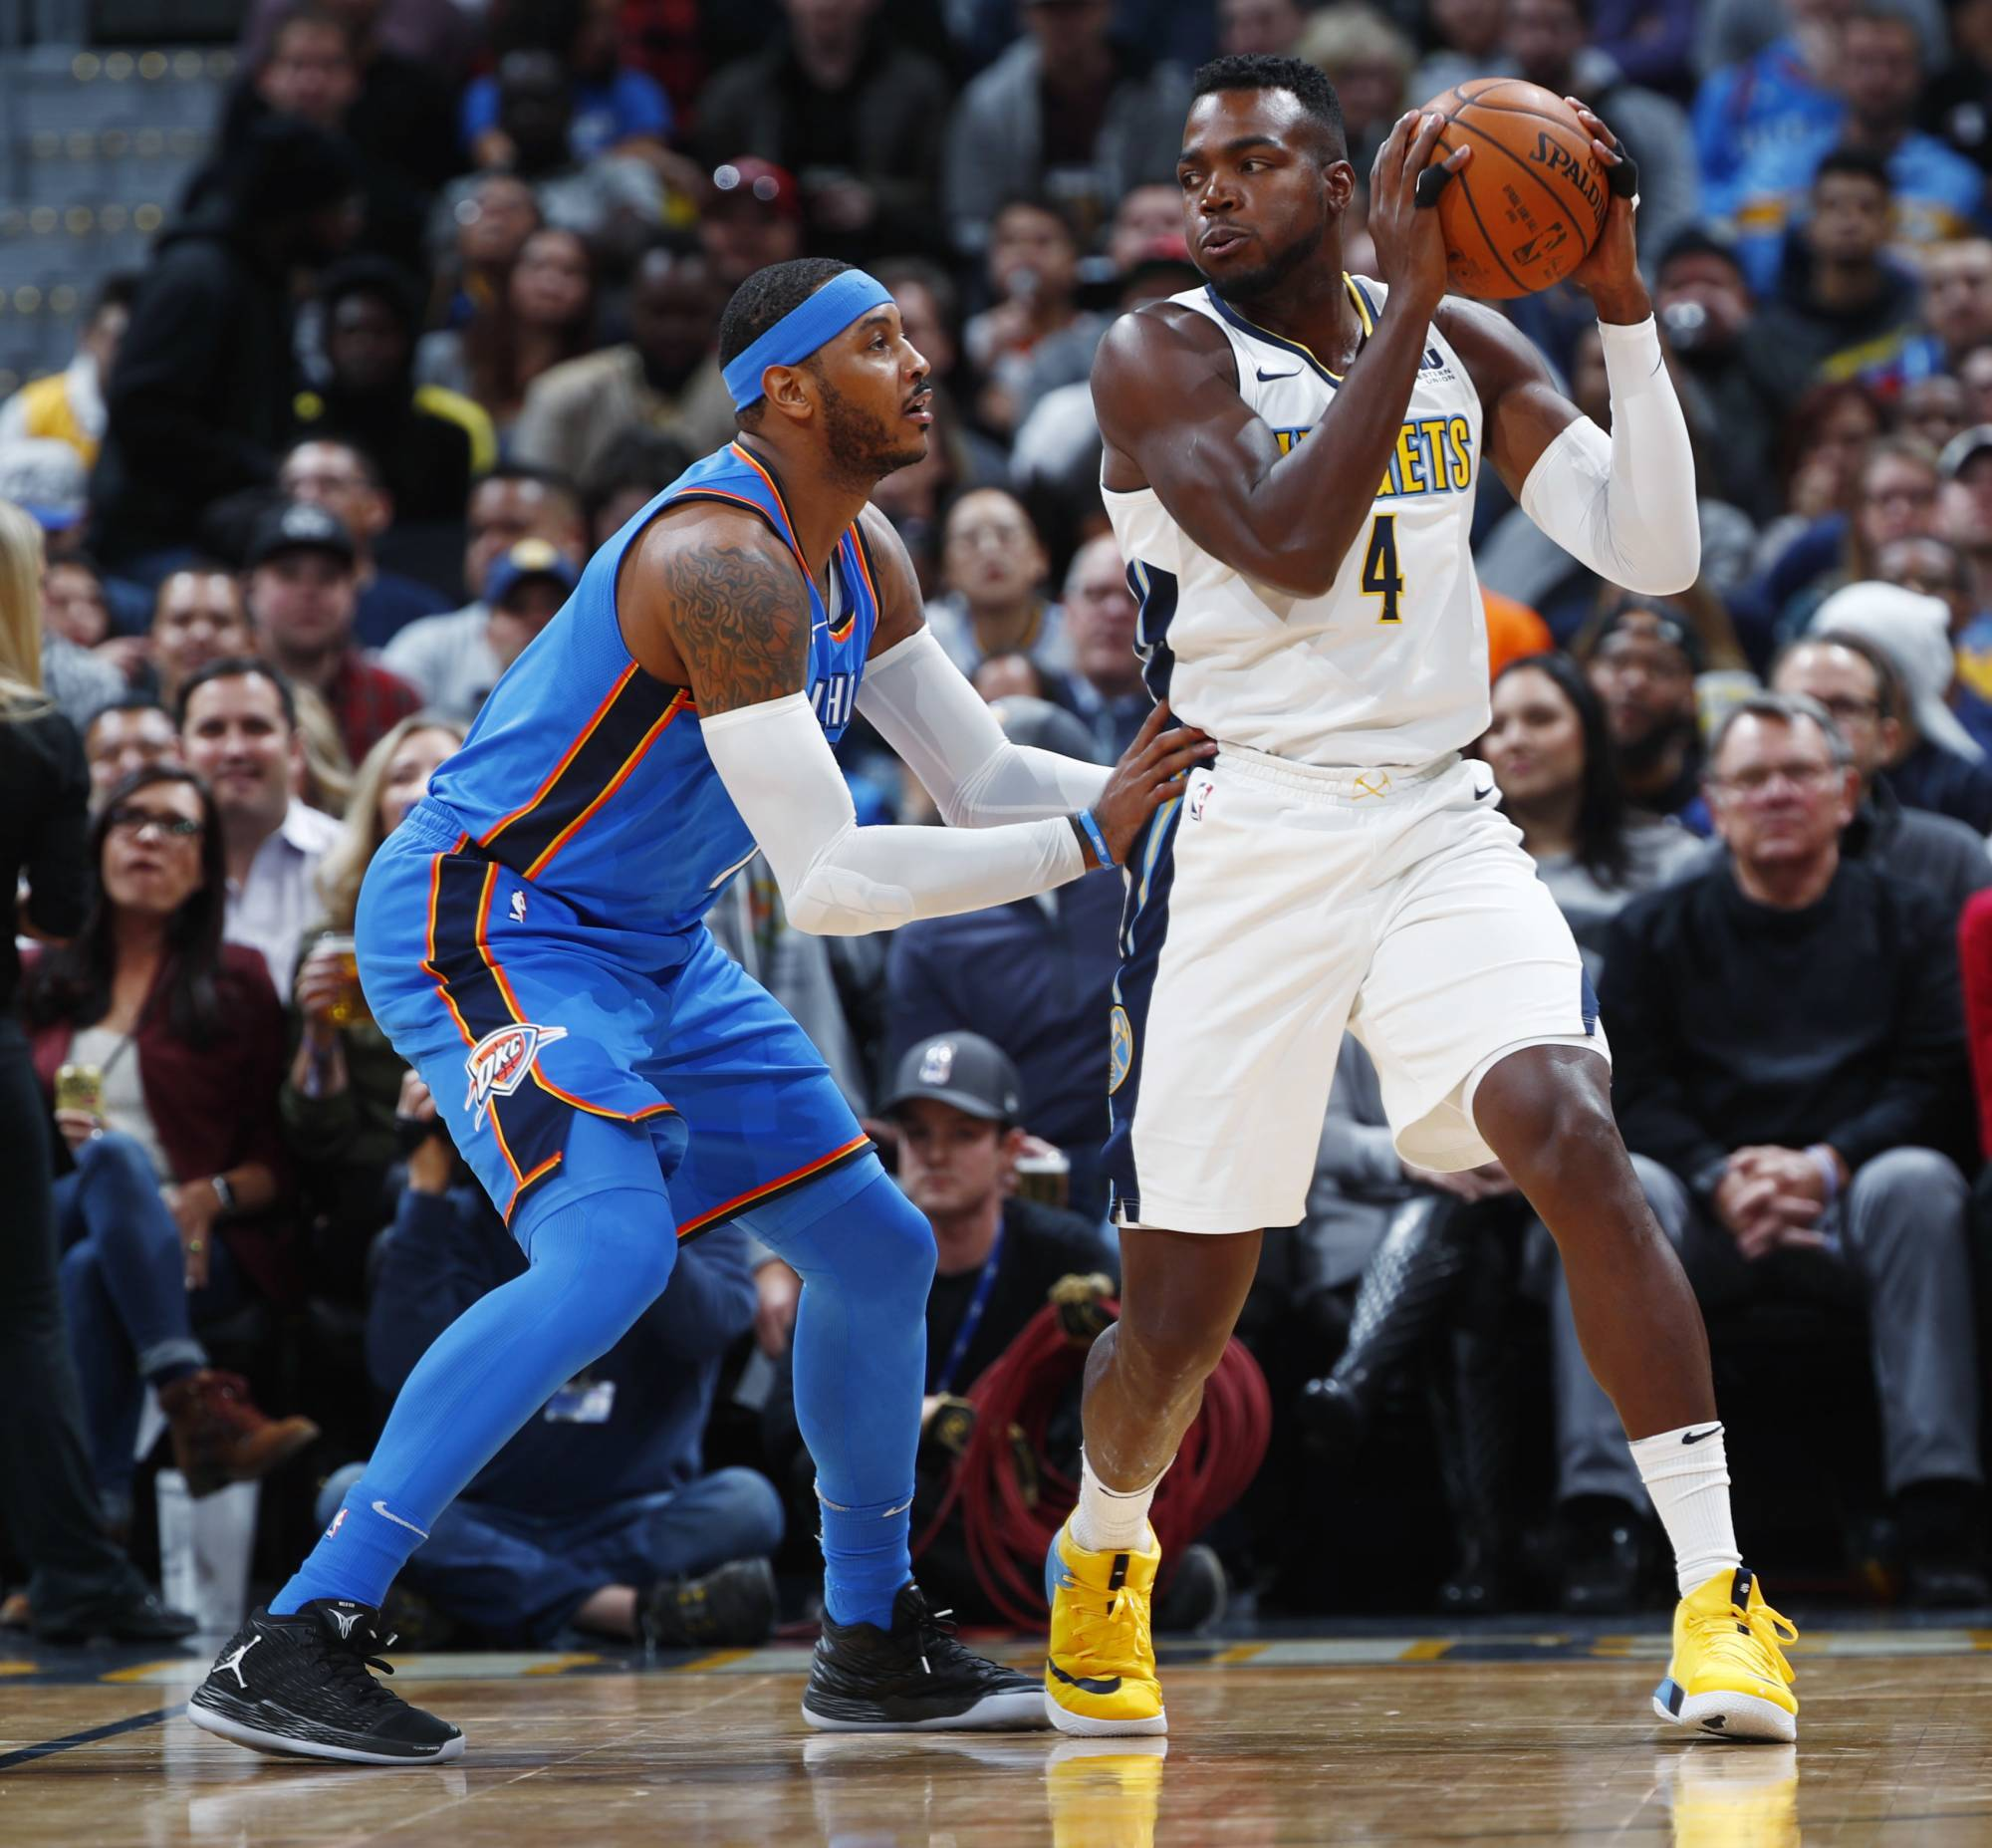 Mudiay's 21 Points Leads Nuggets Past Thunder 102-94